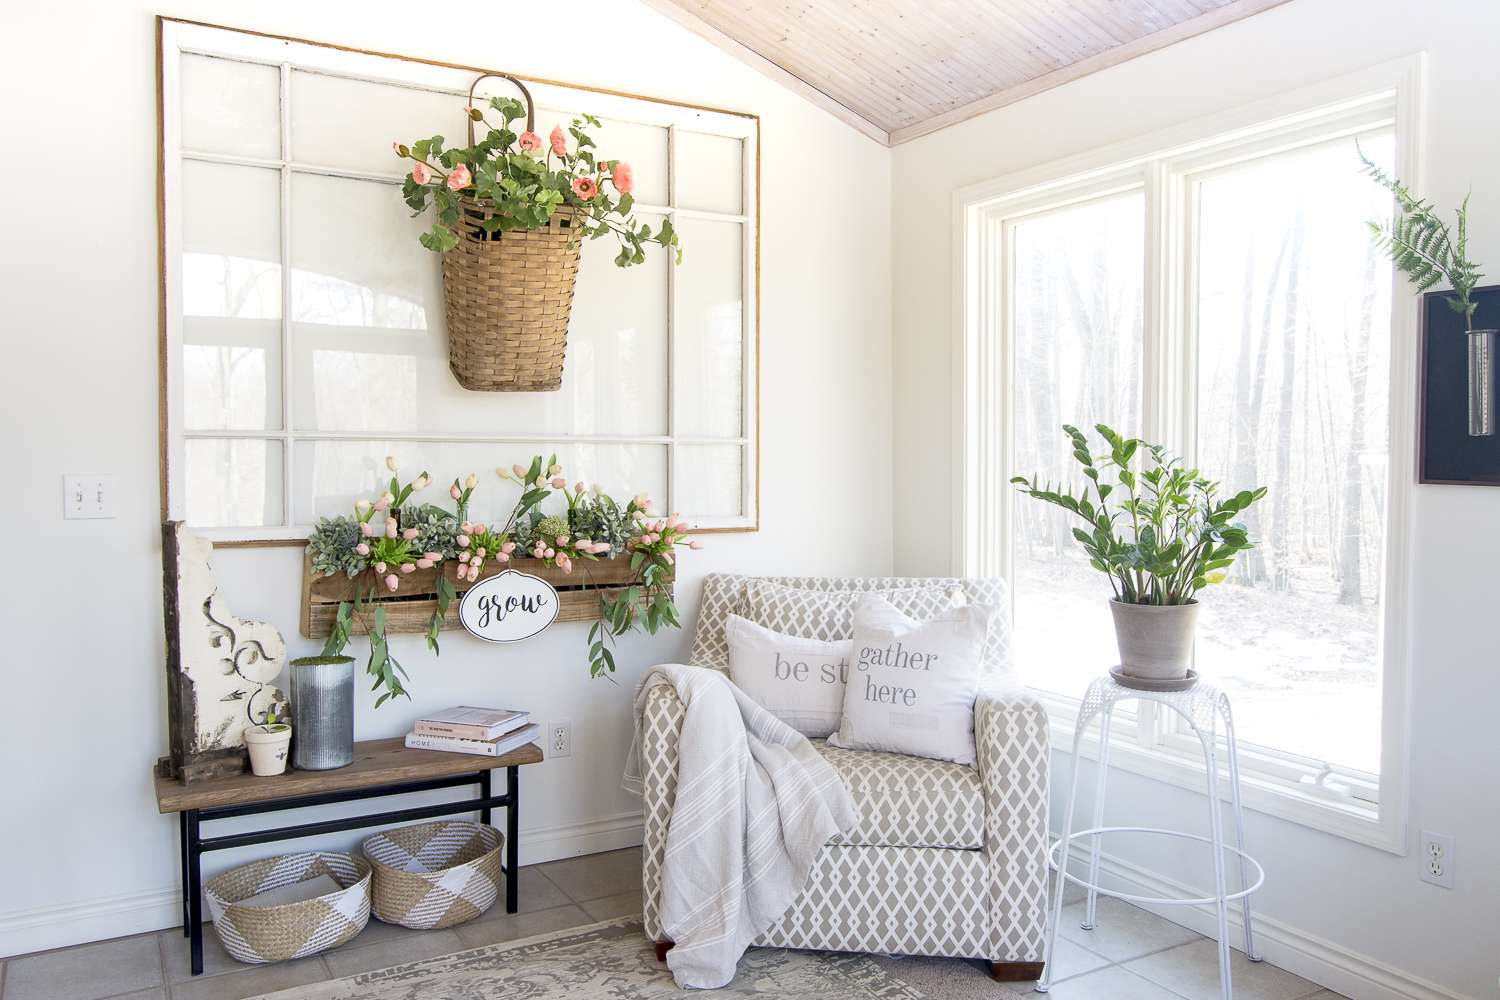 Do you adhere to the concept of reduce, reuse, recycle? Today I'm sharing several upcycling ideas for affordable home furnishings! #fromhousetohaven #upcyclingideas #repurposeddecor